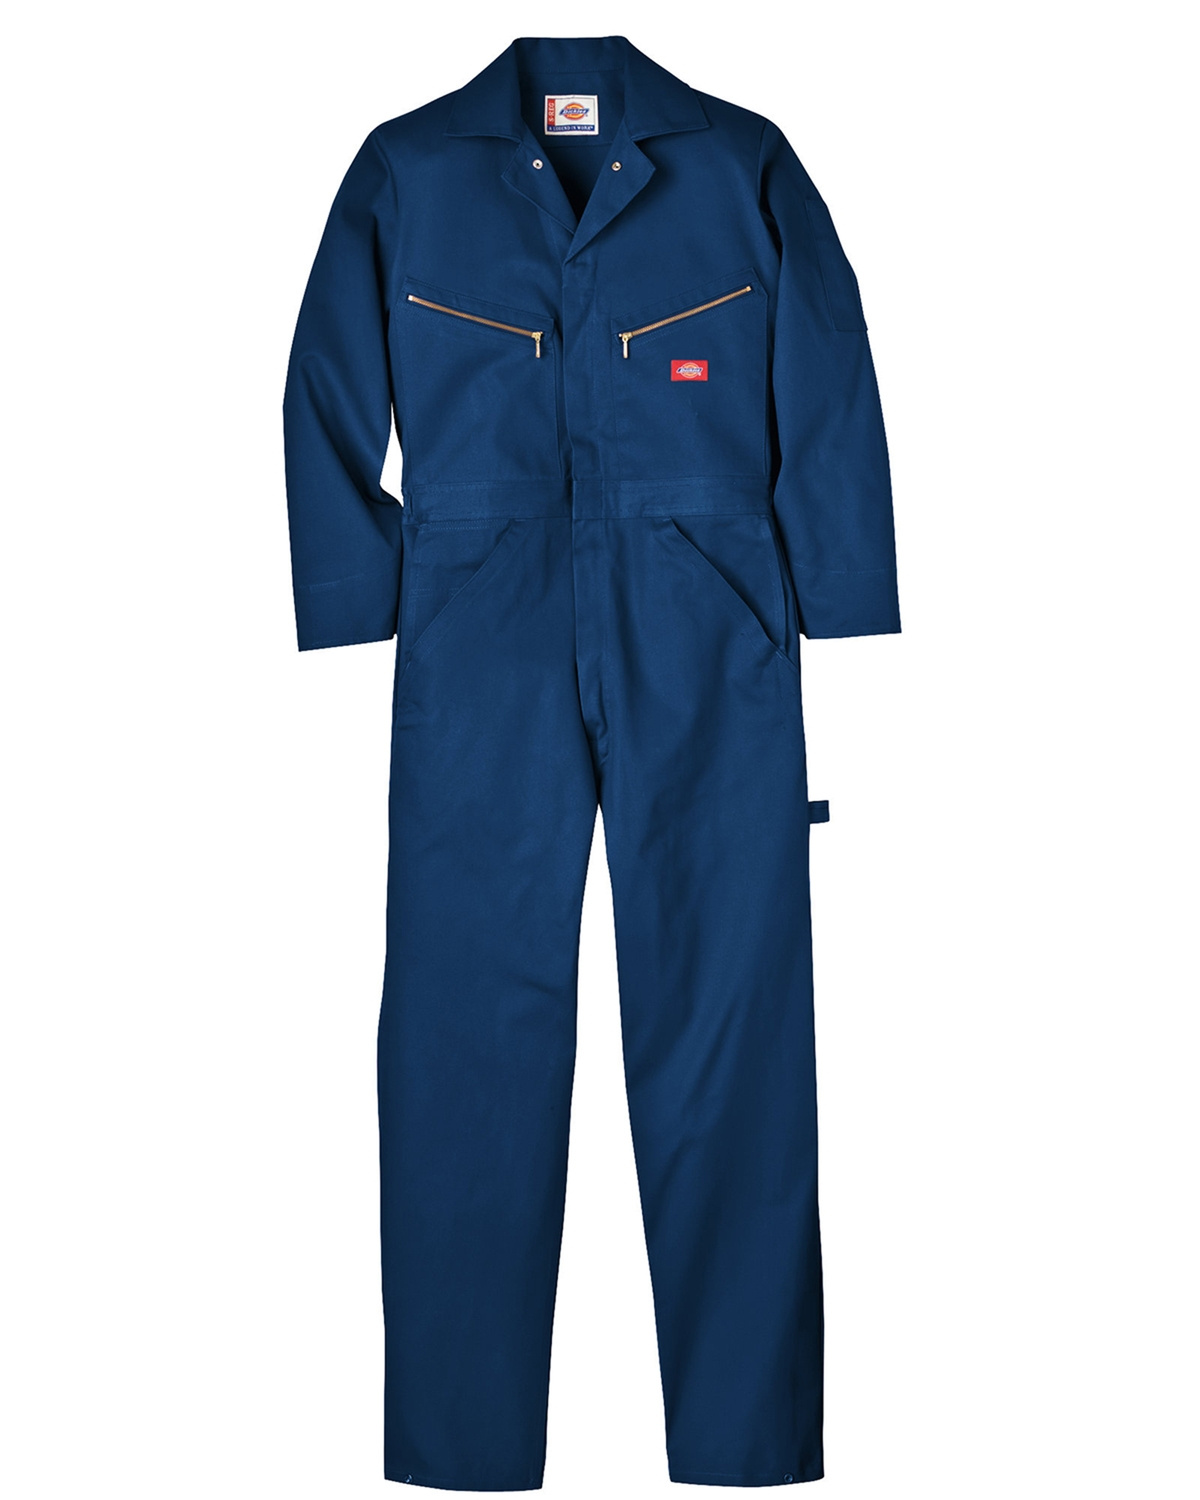 Cotton 8.75 oz. Deluxe Coverall